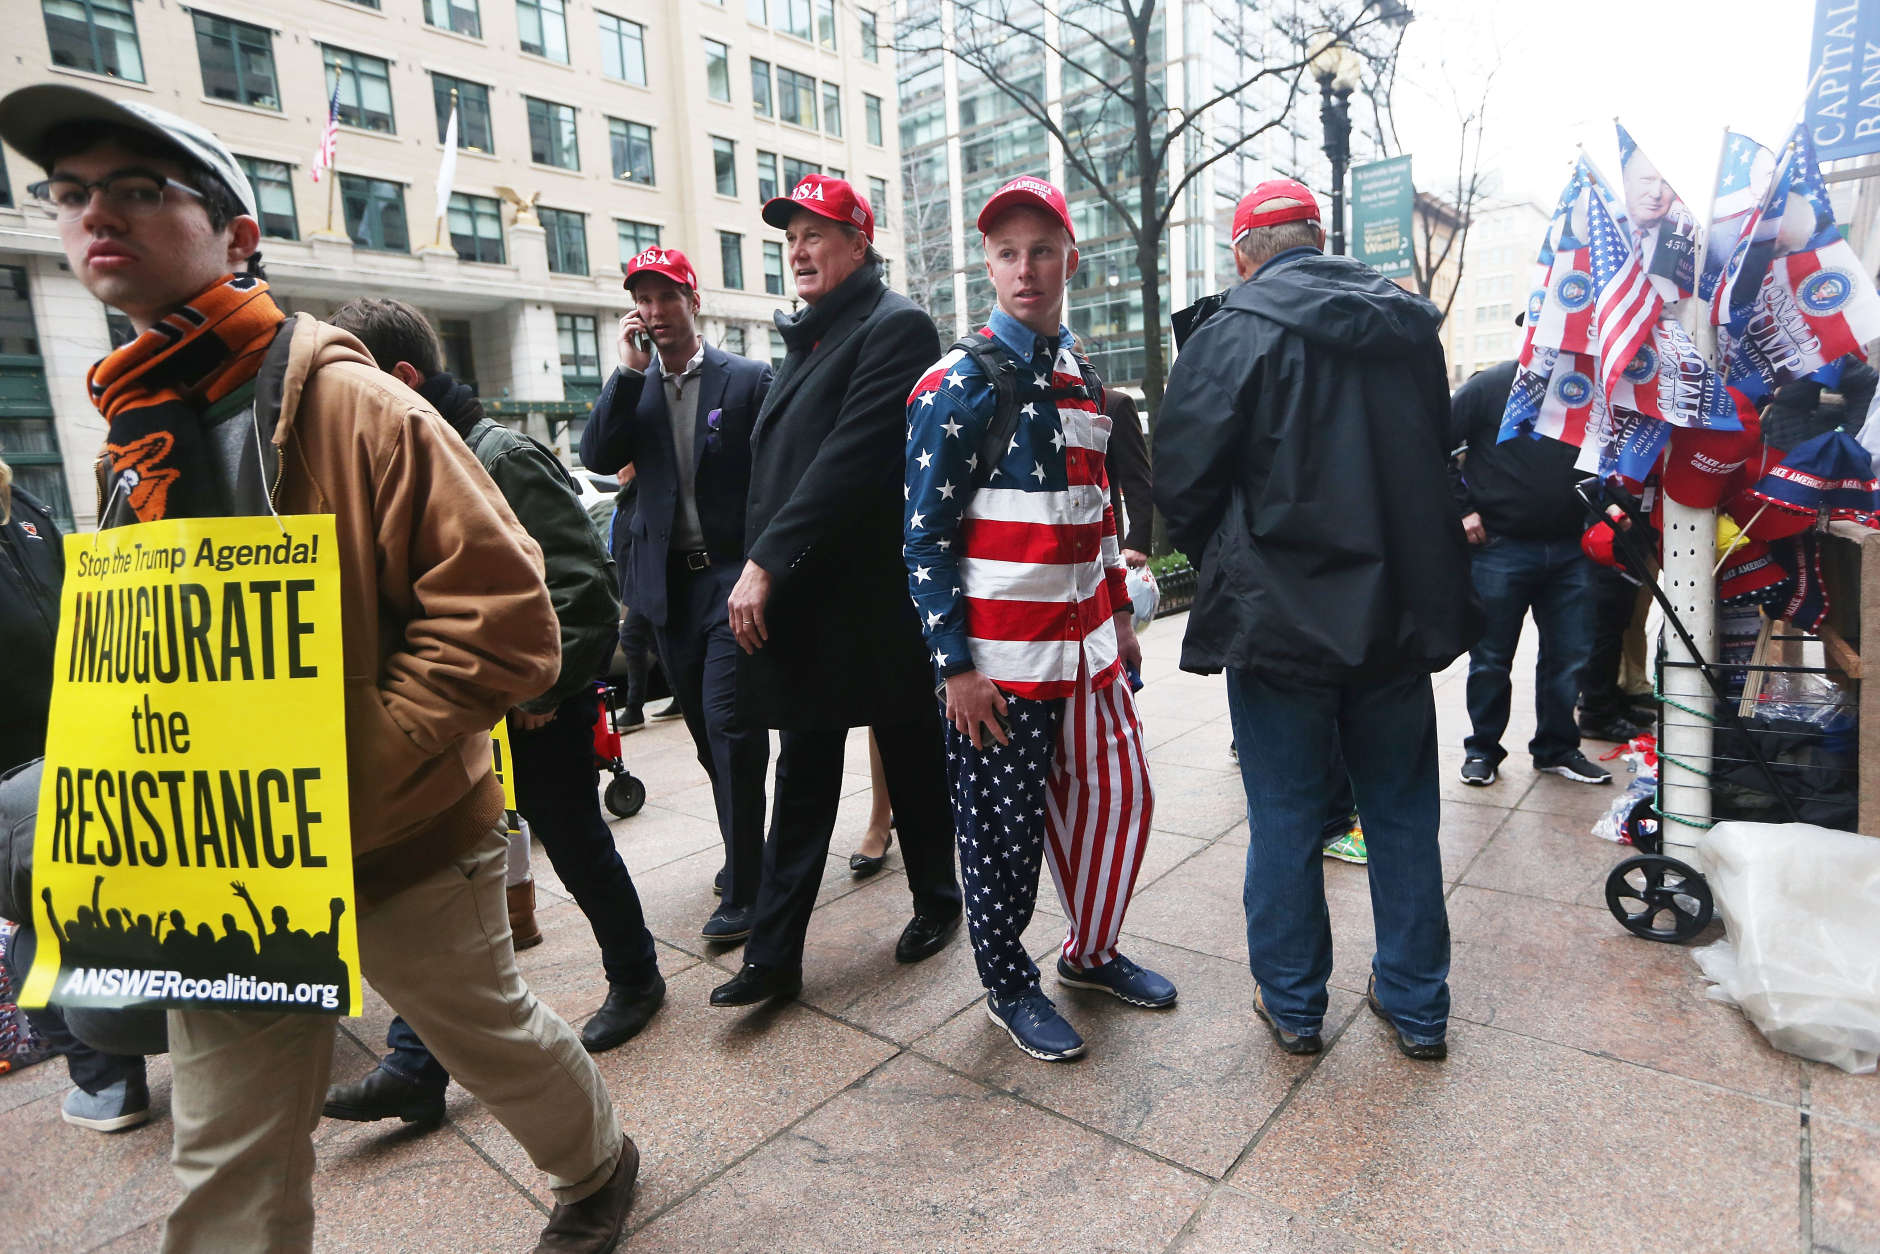 WASHINGTON, DC - JANUARY 20:  An anti-Trump protester (L) walks past Trump supporters on January 20, 2017 in Washington, DC.  President-elect Donald Trump was sworn in as the 45th U.S. President today.  (Photo by Mario Tama/Getty Images)